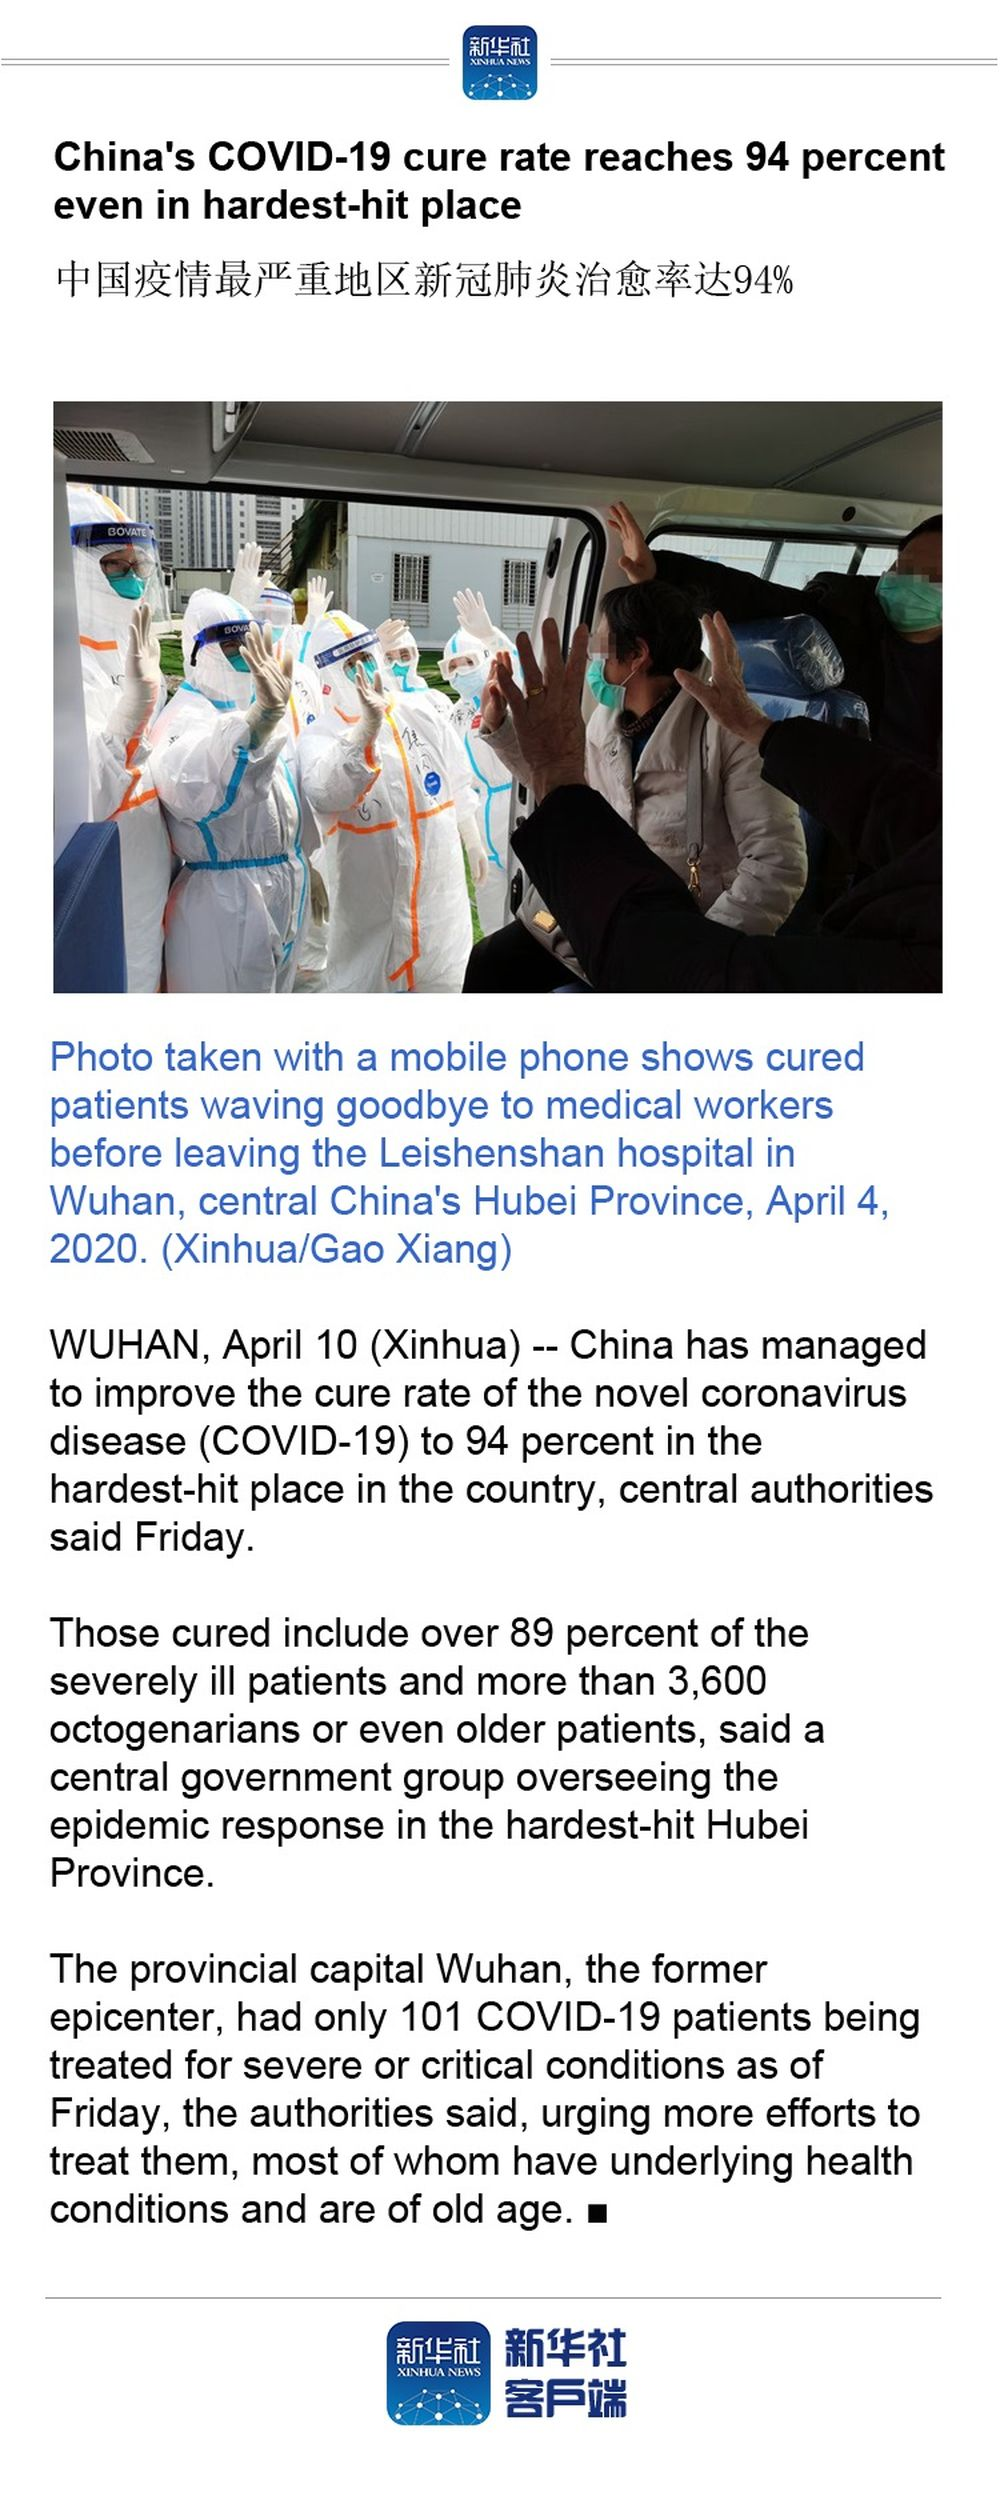 China's COVID-19 cure rate reaches 94 percent even in hardest-hit place